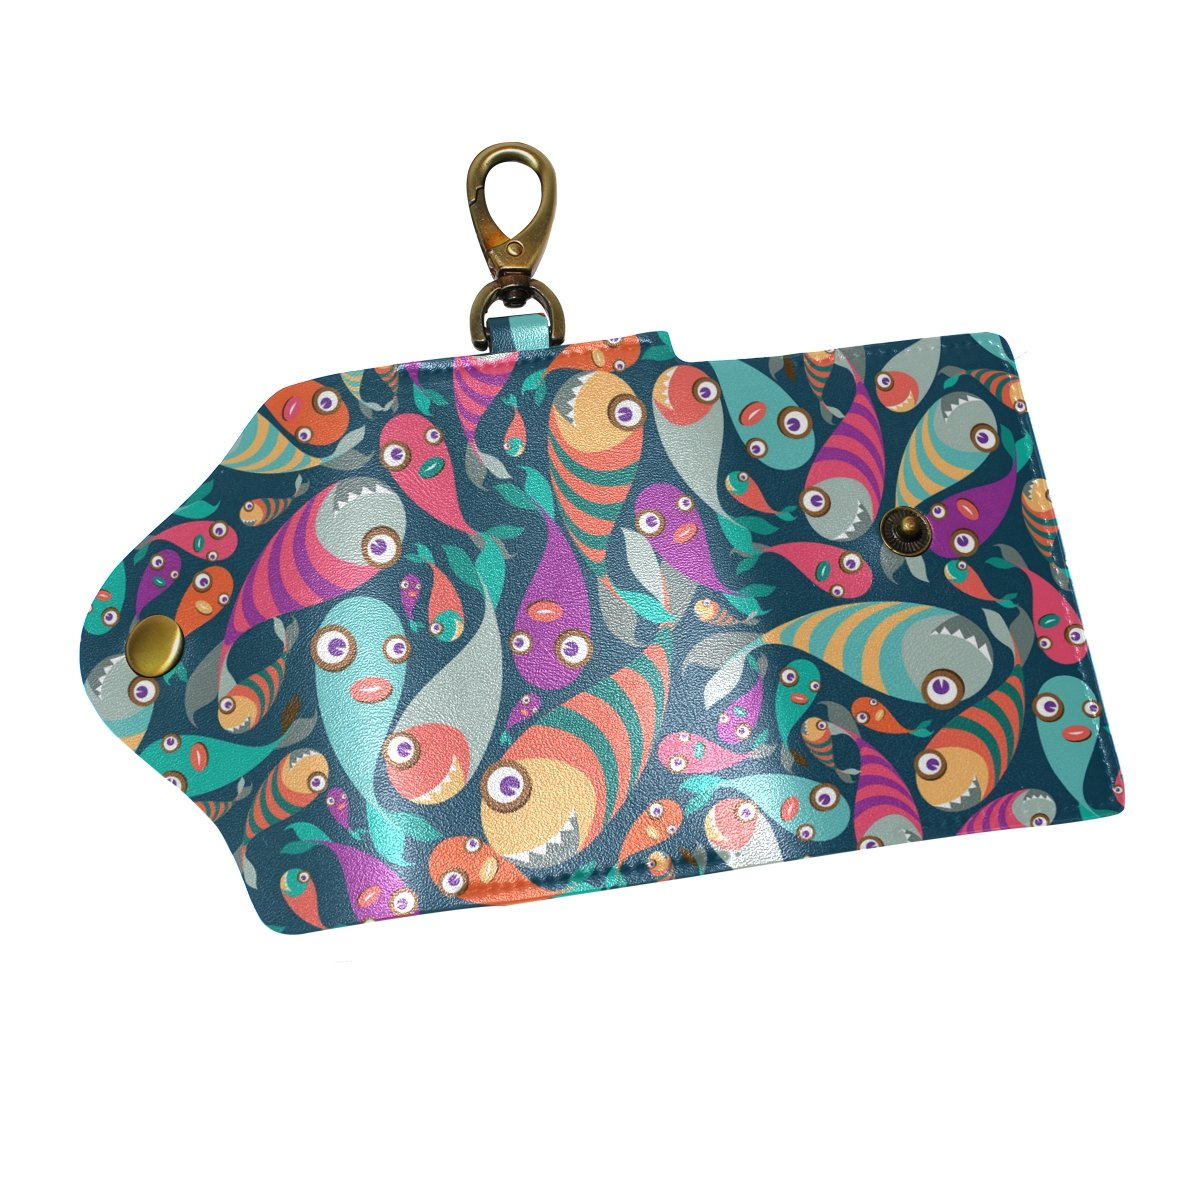 KEAKIA Tropical Fish Leather Key Case Wallets Tri-fold Key Holder Keychains with 6 Hooks 2 Slot Snap Closure for Men Women